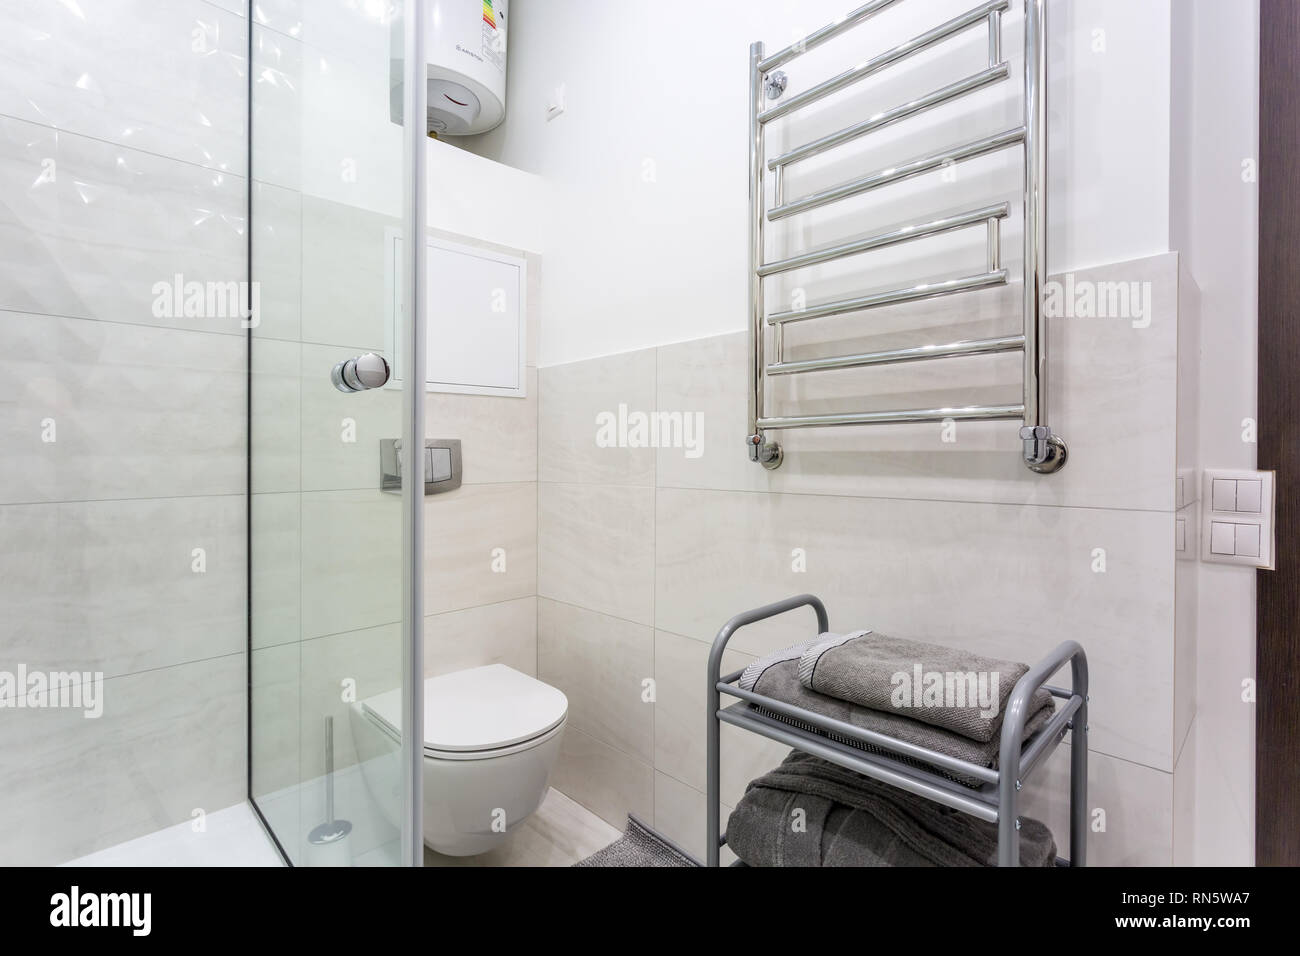 toilet and detail of a corner shower cabin with wall mount shower attachment - Stock Image